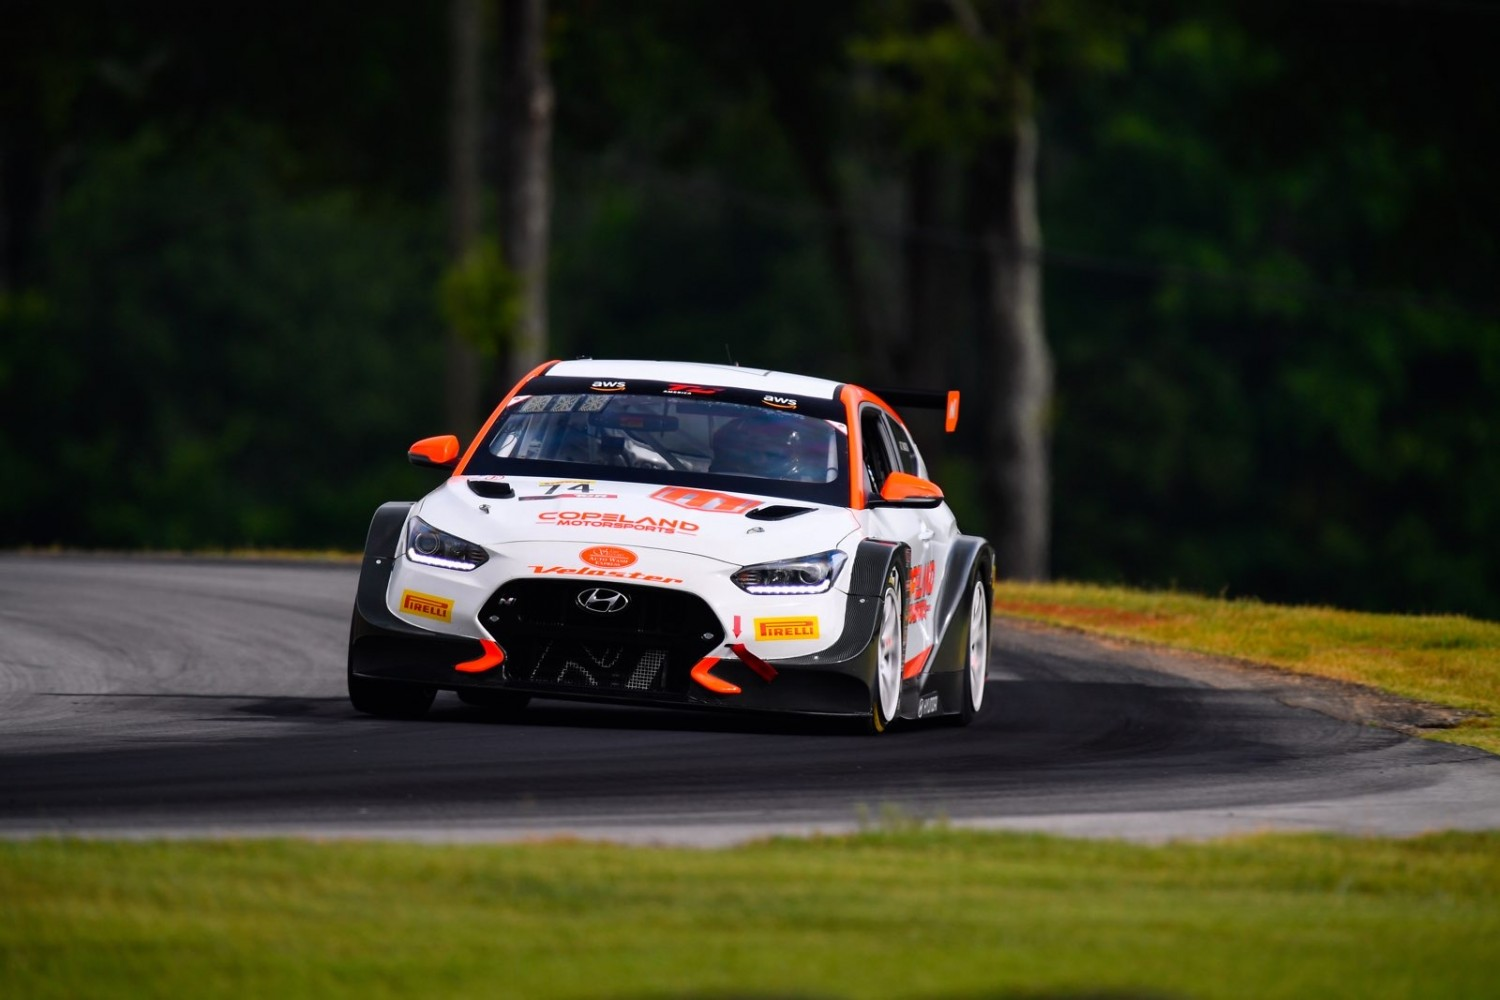 Maxson Leads Opening TC America Practice Session from VIR